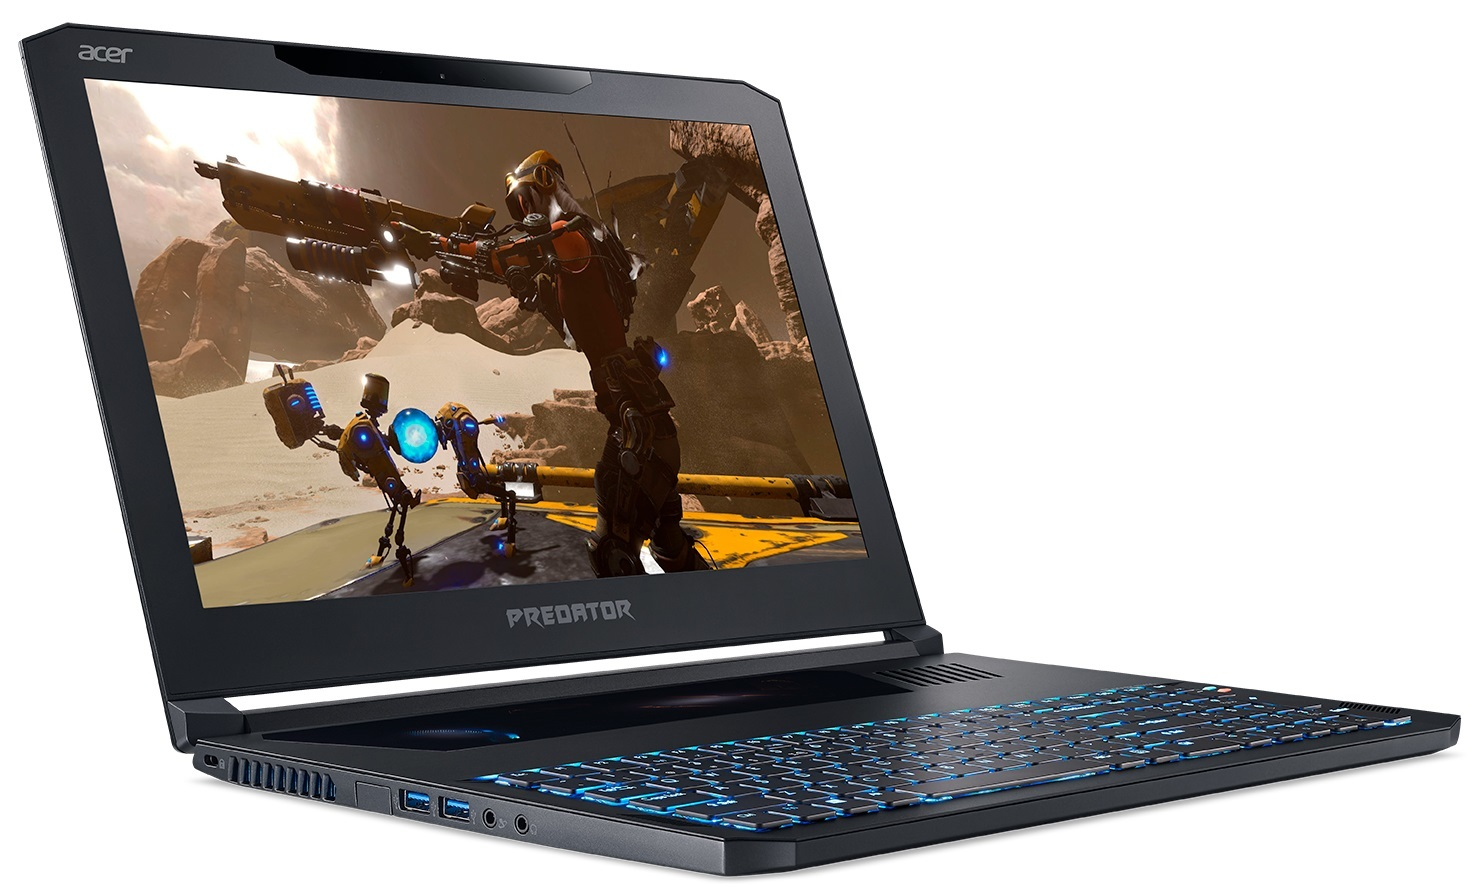 "Acer Predator Triton 700 PT715-51-70Q2 15.6"" Gaming Laptop Intel Core i7-7700HQ, 16GB RAM, GTX 1060 6GB image"